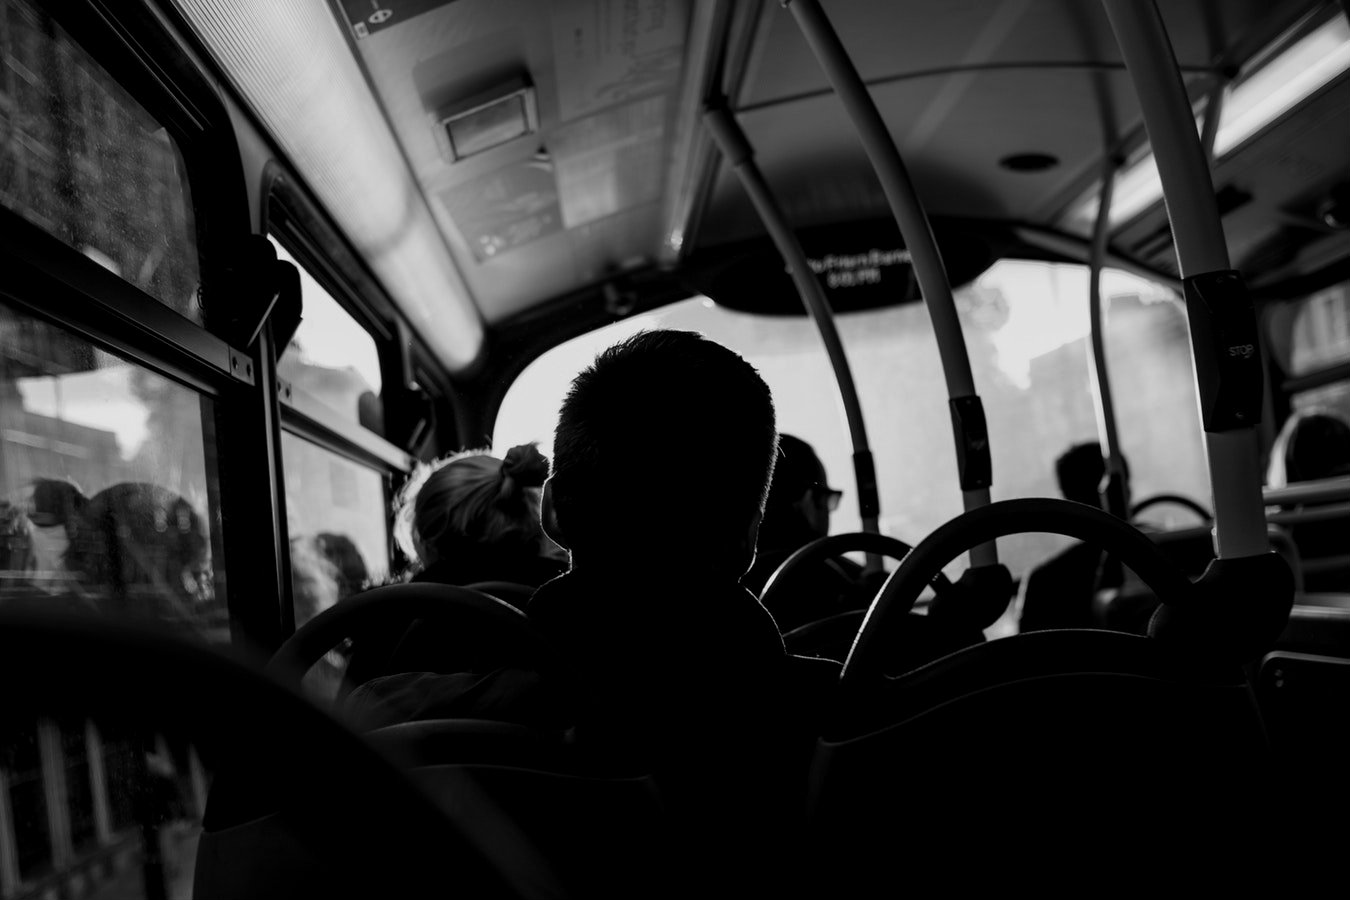 Bus Journey - I recorded my bus journey home from work in its entirety. From the sound of the bus going over bumps. background conversations, brakes hissing and more.Coming Soon